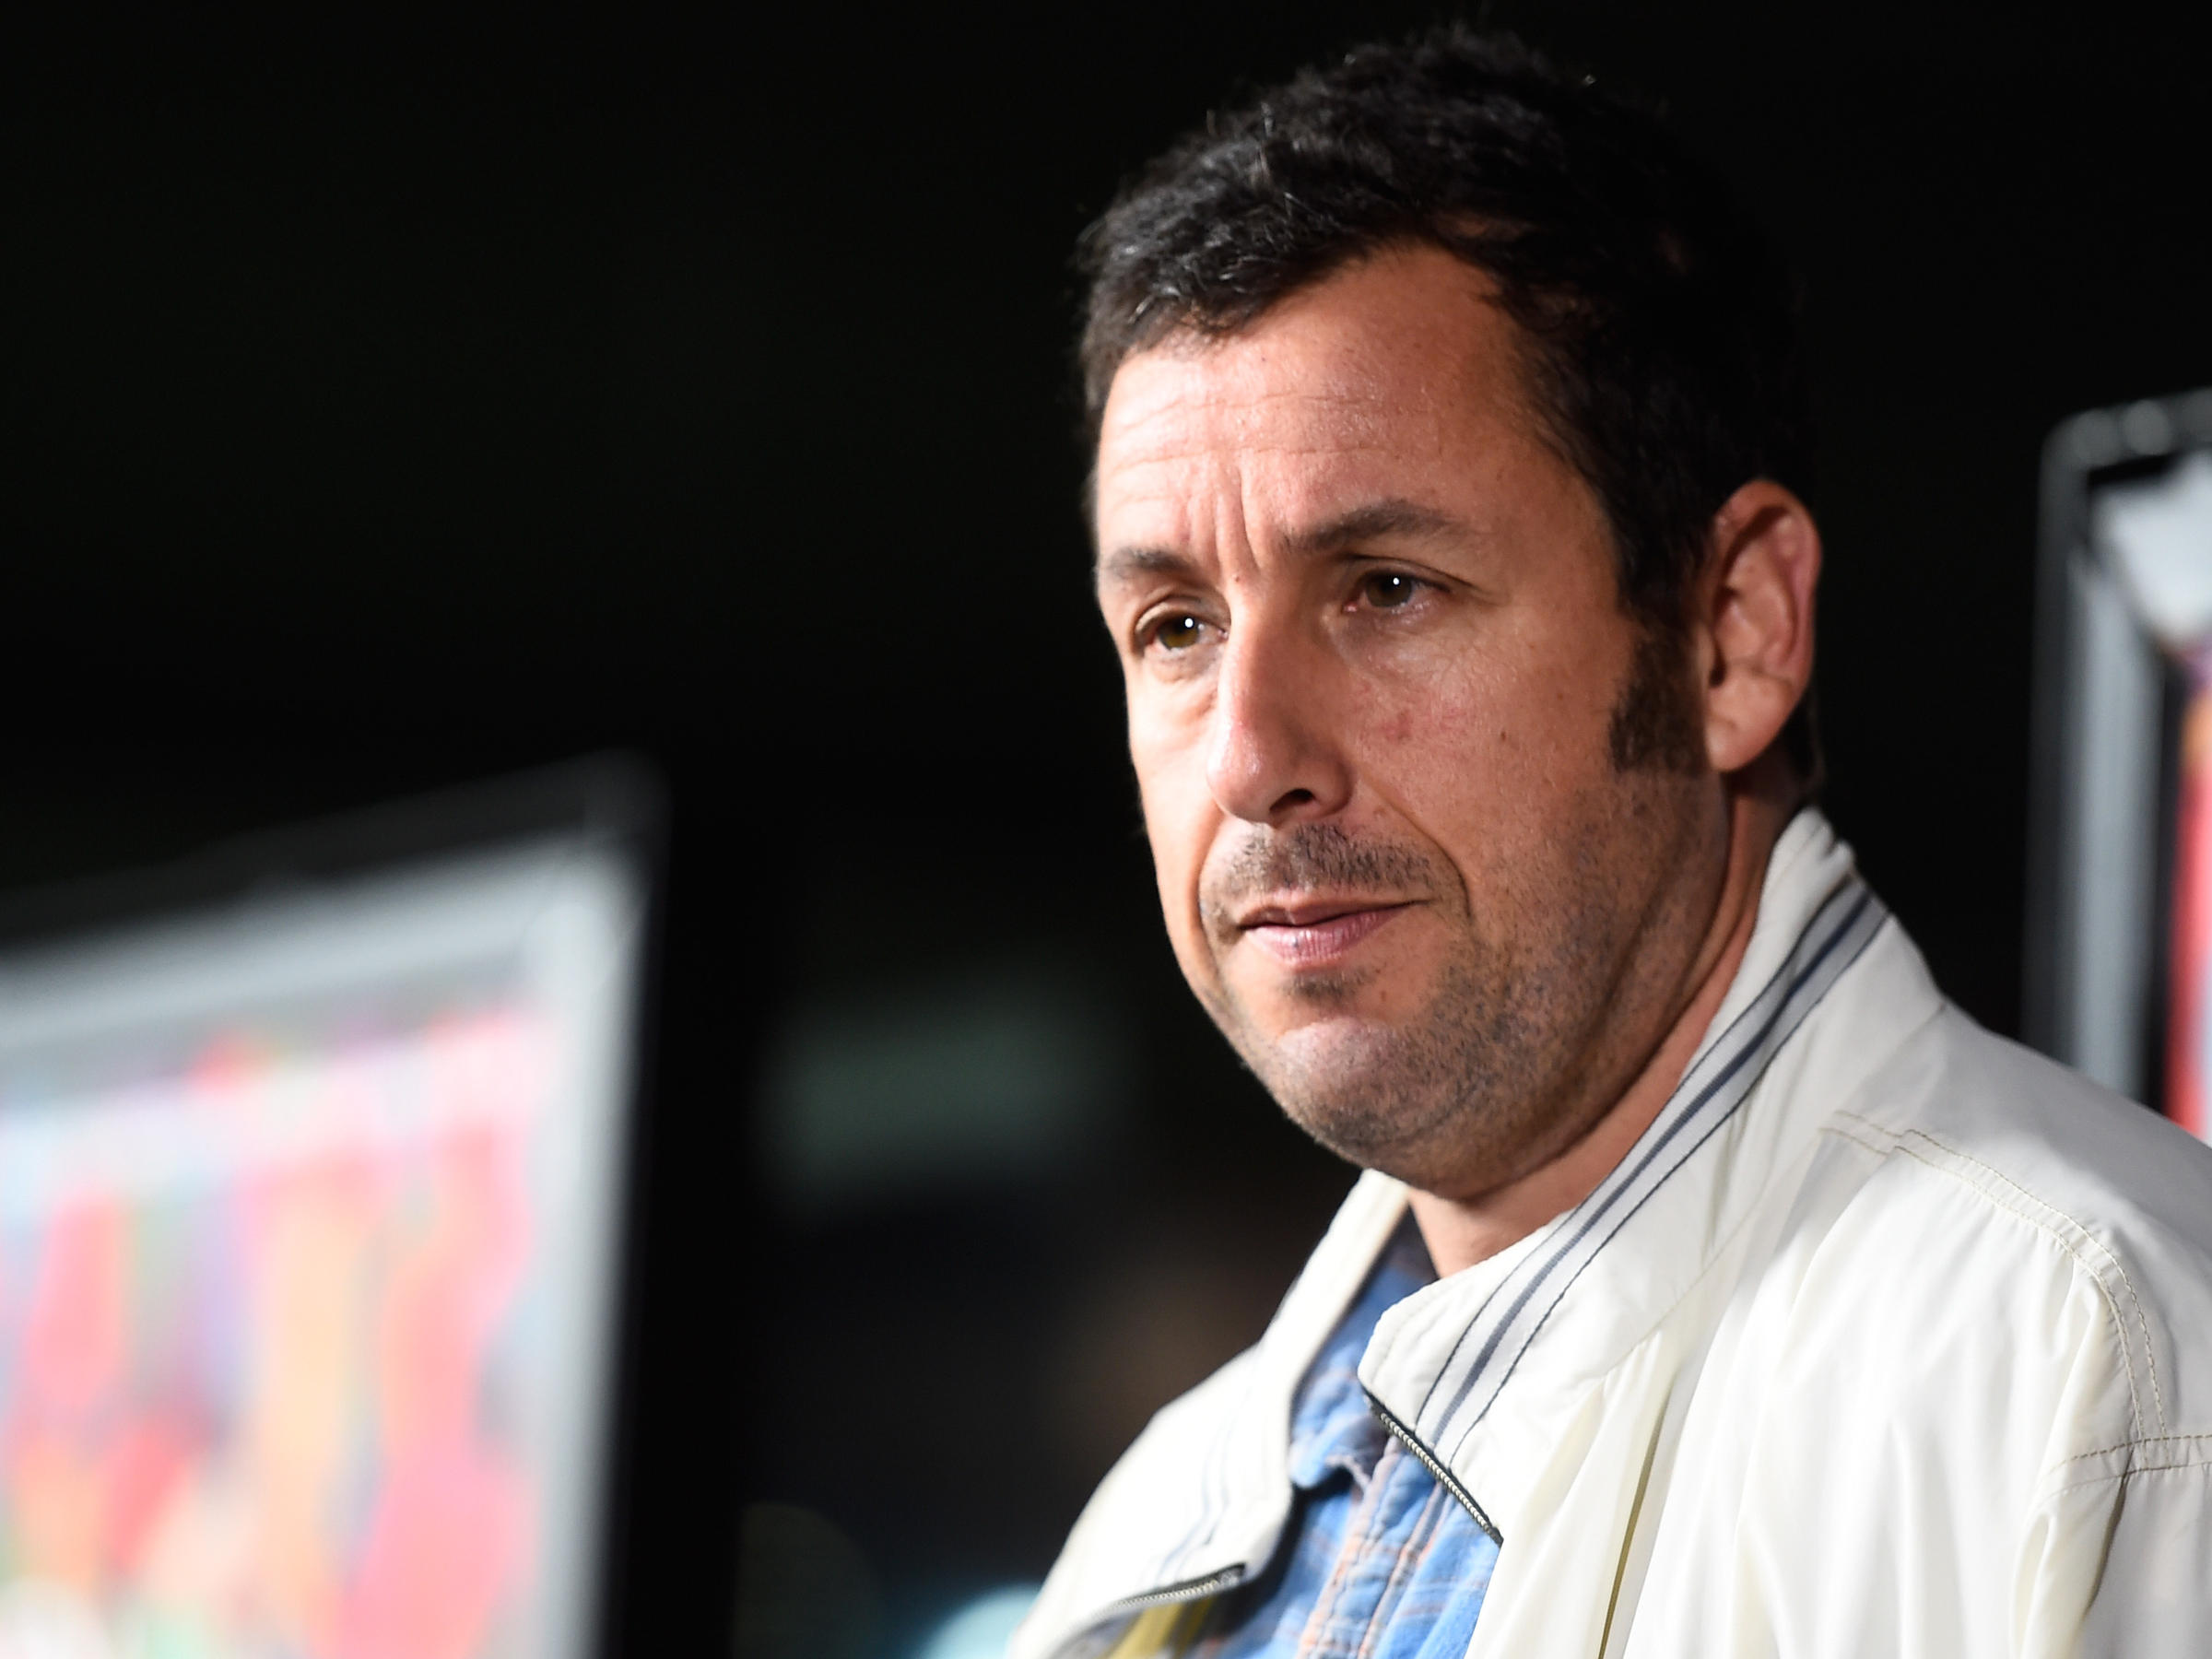 Adam Sandler Signs Up With Netflix For 4 New Movies | WCAI